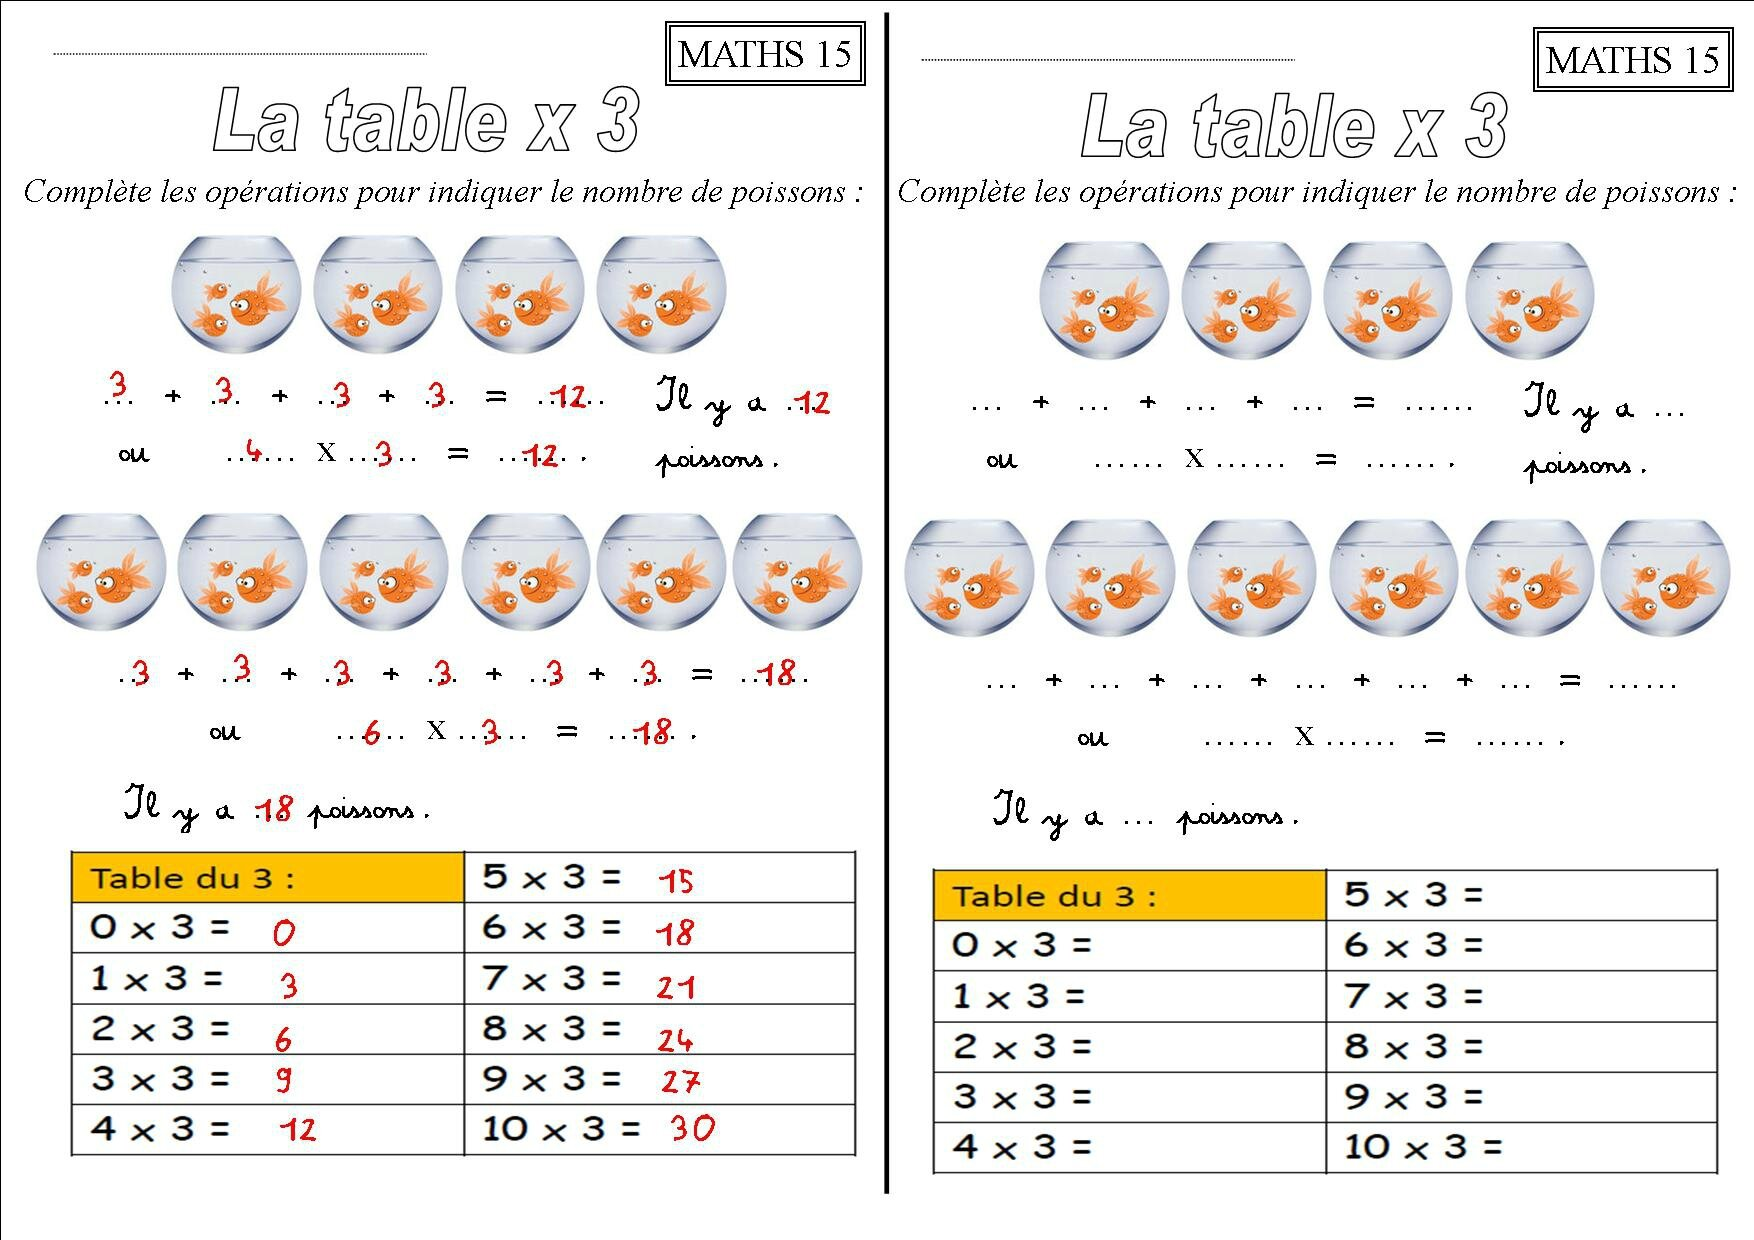 Jeu Table De Multiplication Ce1 Les Tables De Multiplication Ce1 X 2 X 3 X 4 X 5 X 10 La